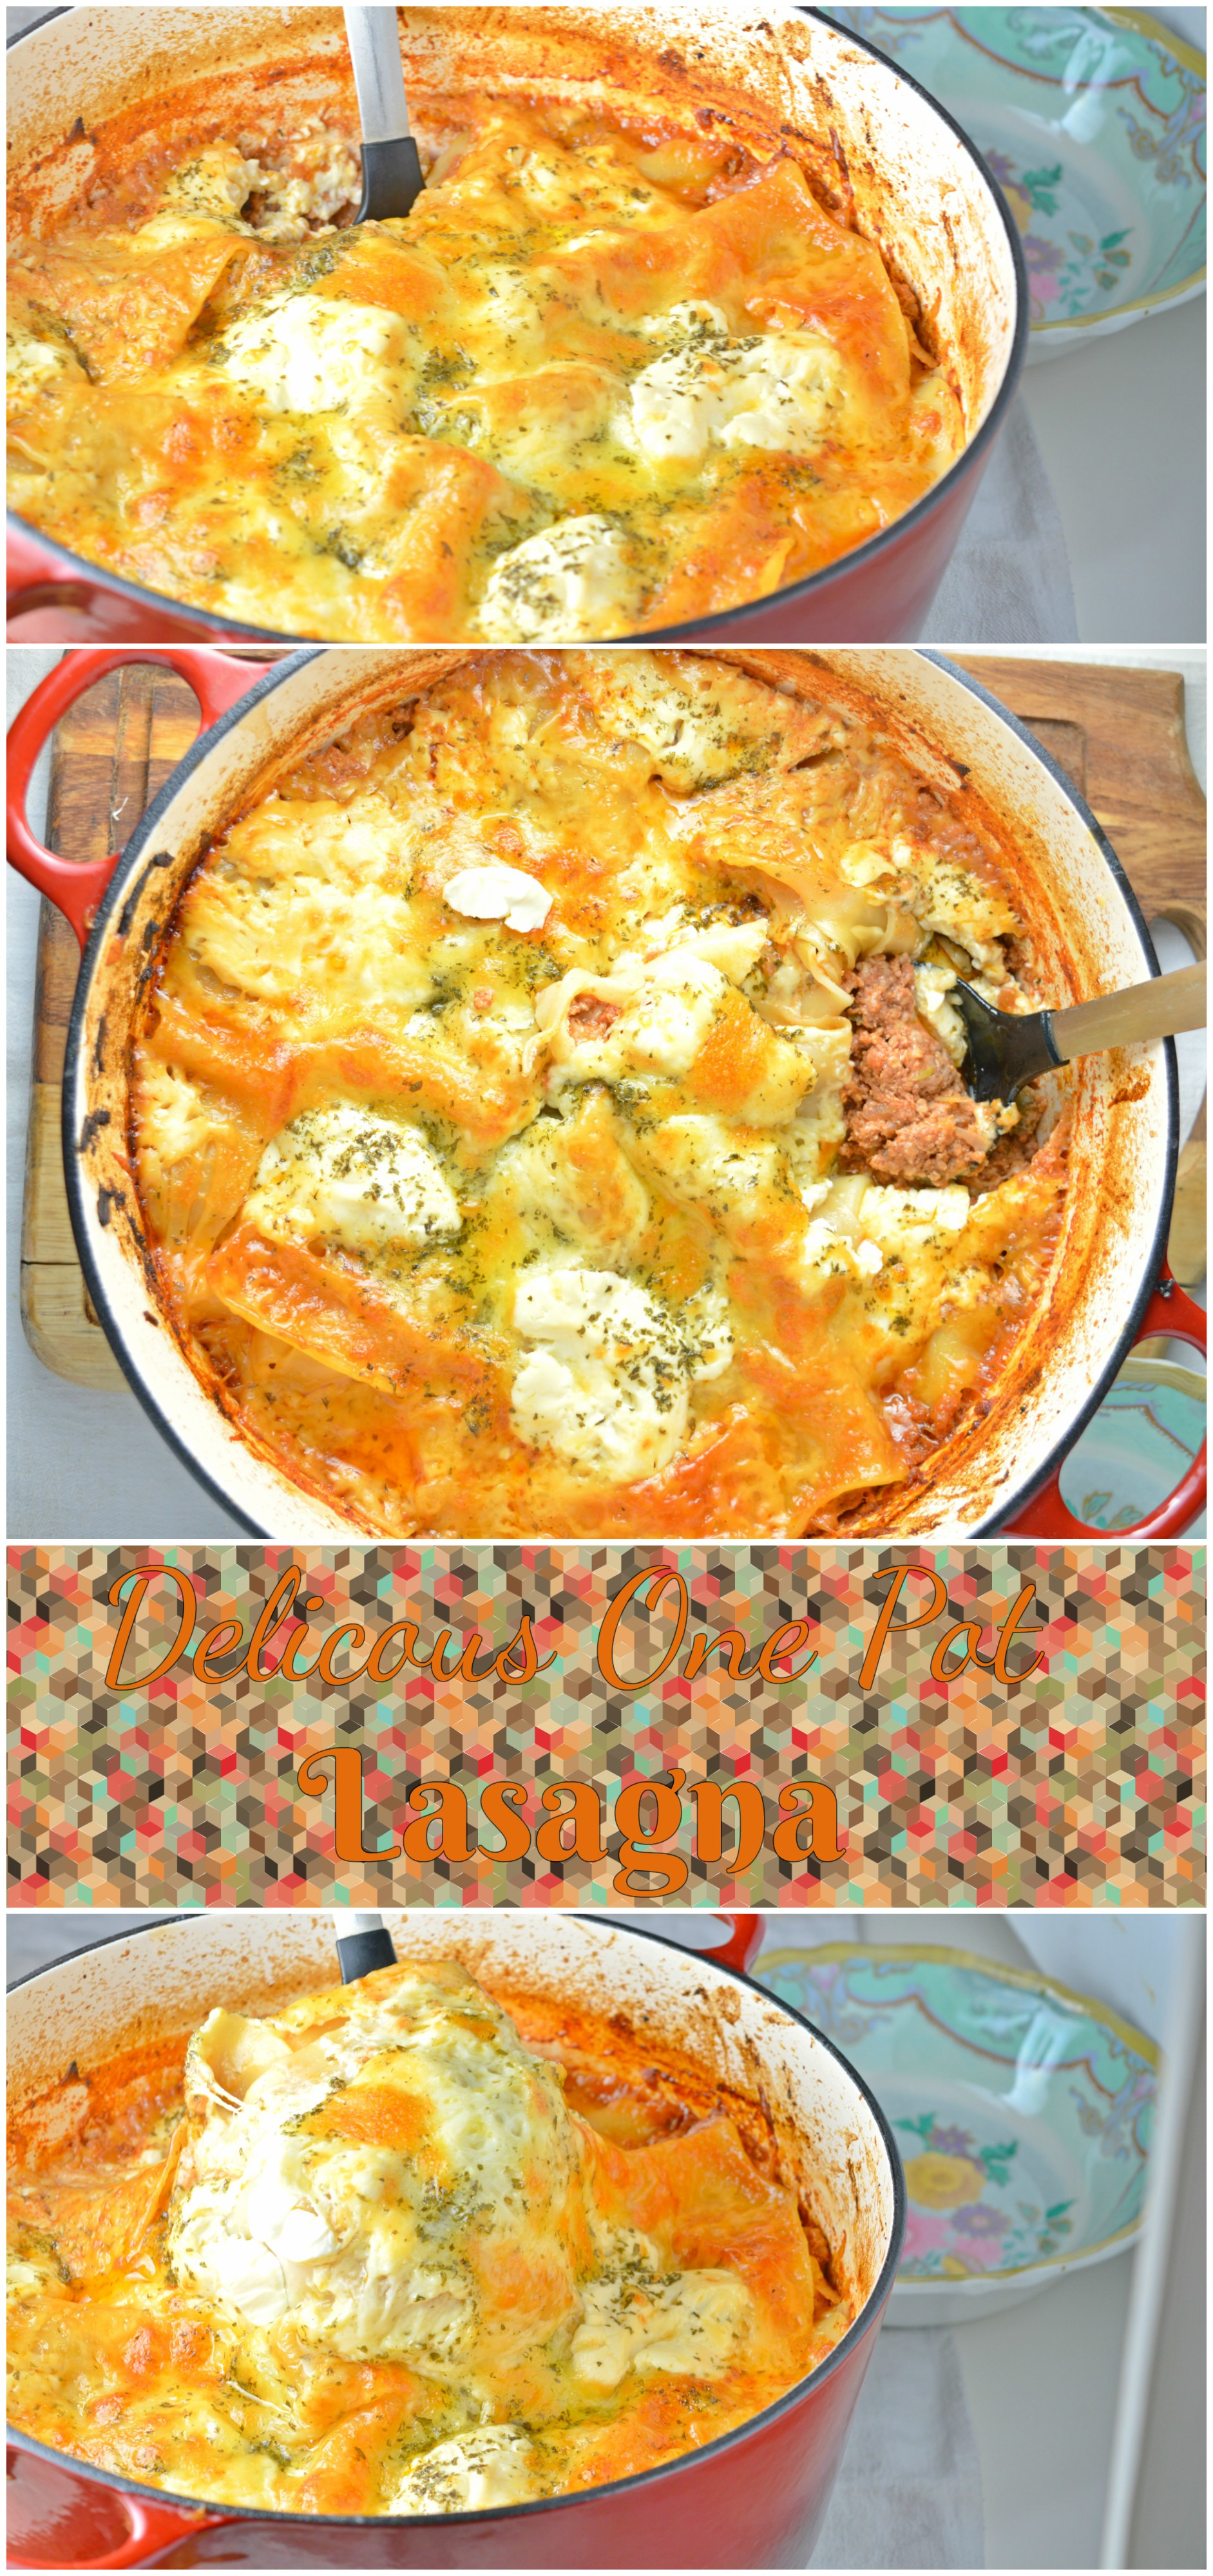 Delicious One Pot Lasagna